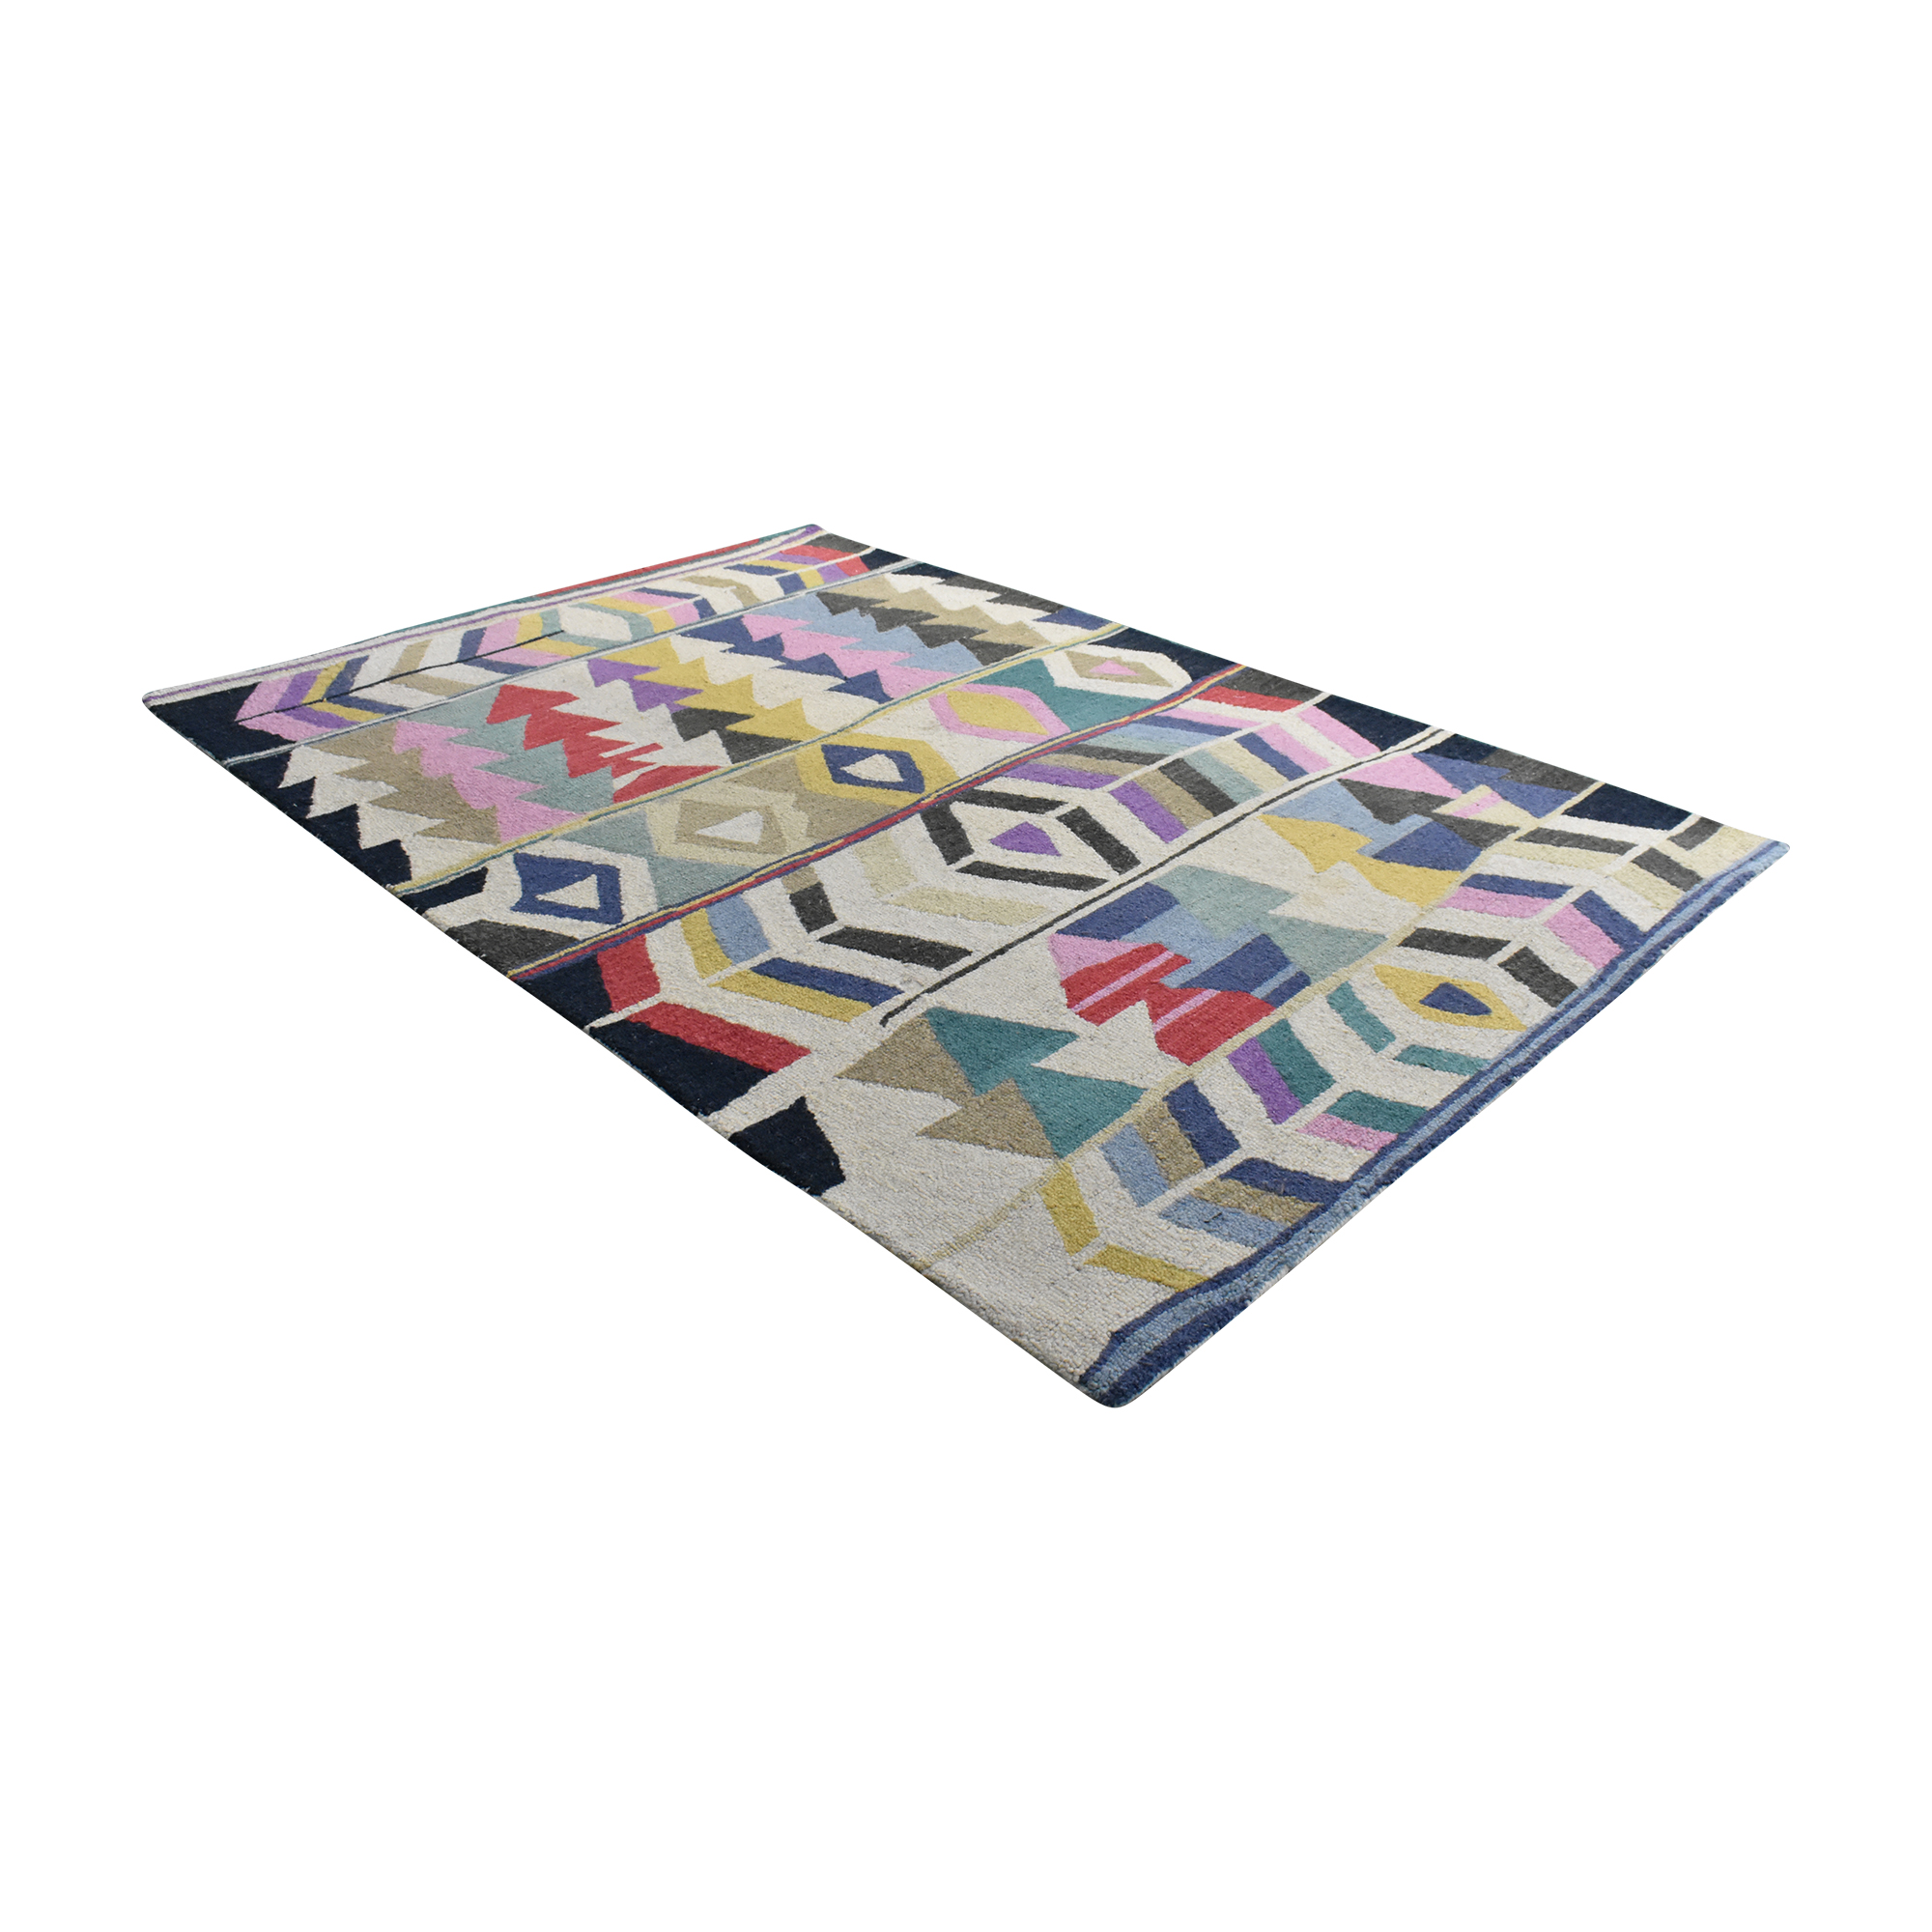 nuLOOM nuLOOM Harmony Collection Area Rug dimensions